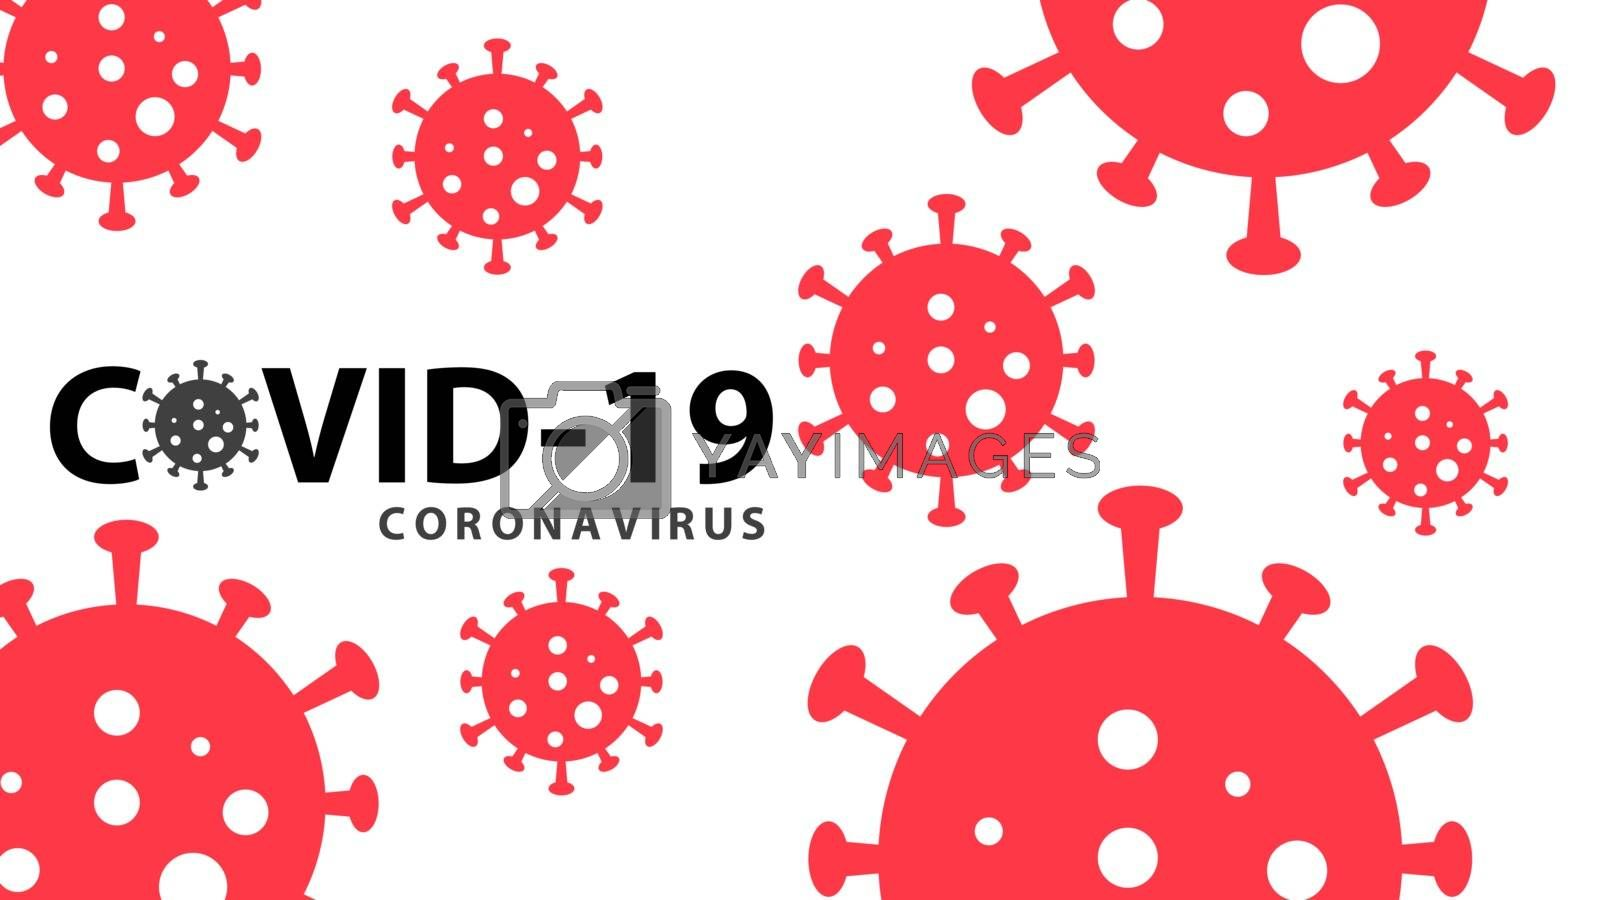 Covid-19 coronavirus pandemic outbreak banner. Black text red color on white background. Stay at home quarantine concept. Health care and medical vector.